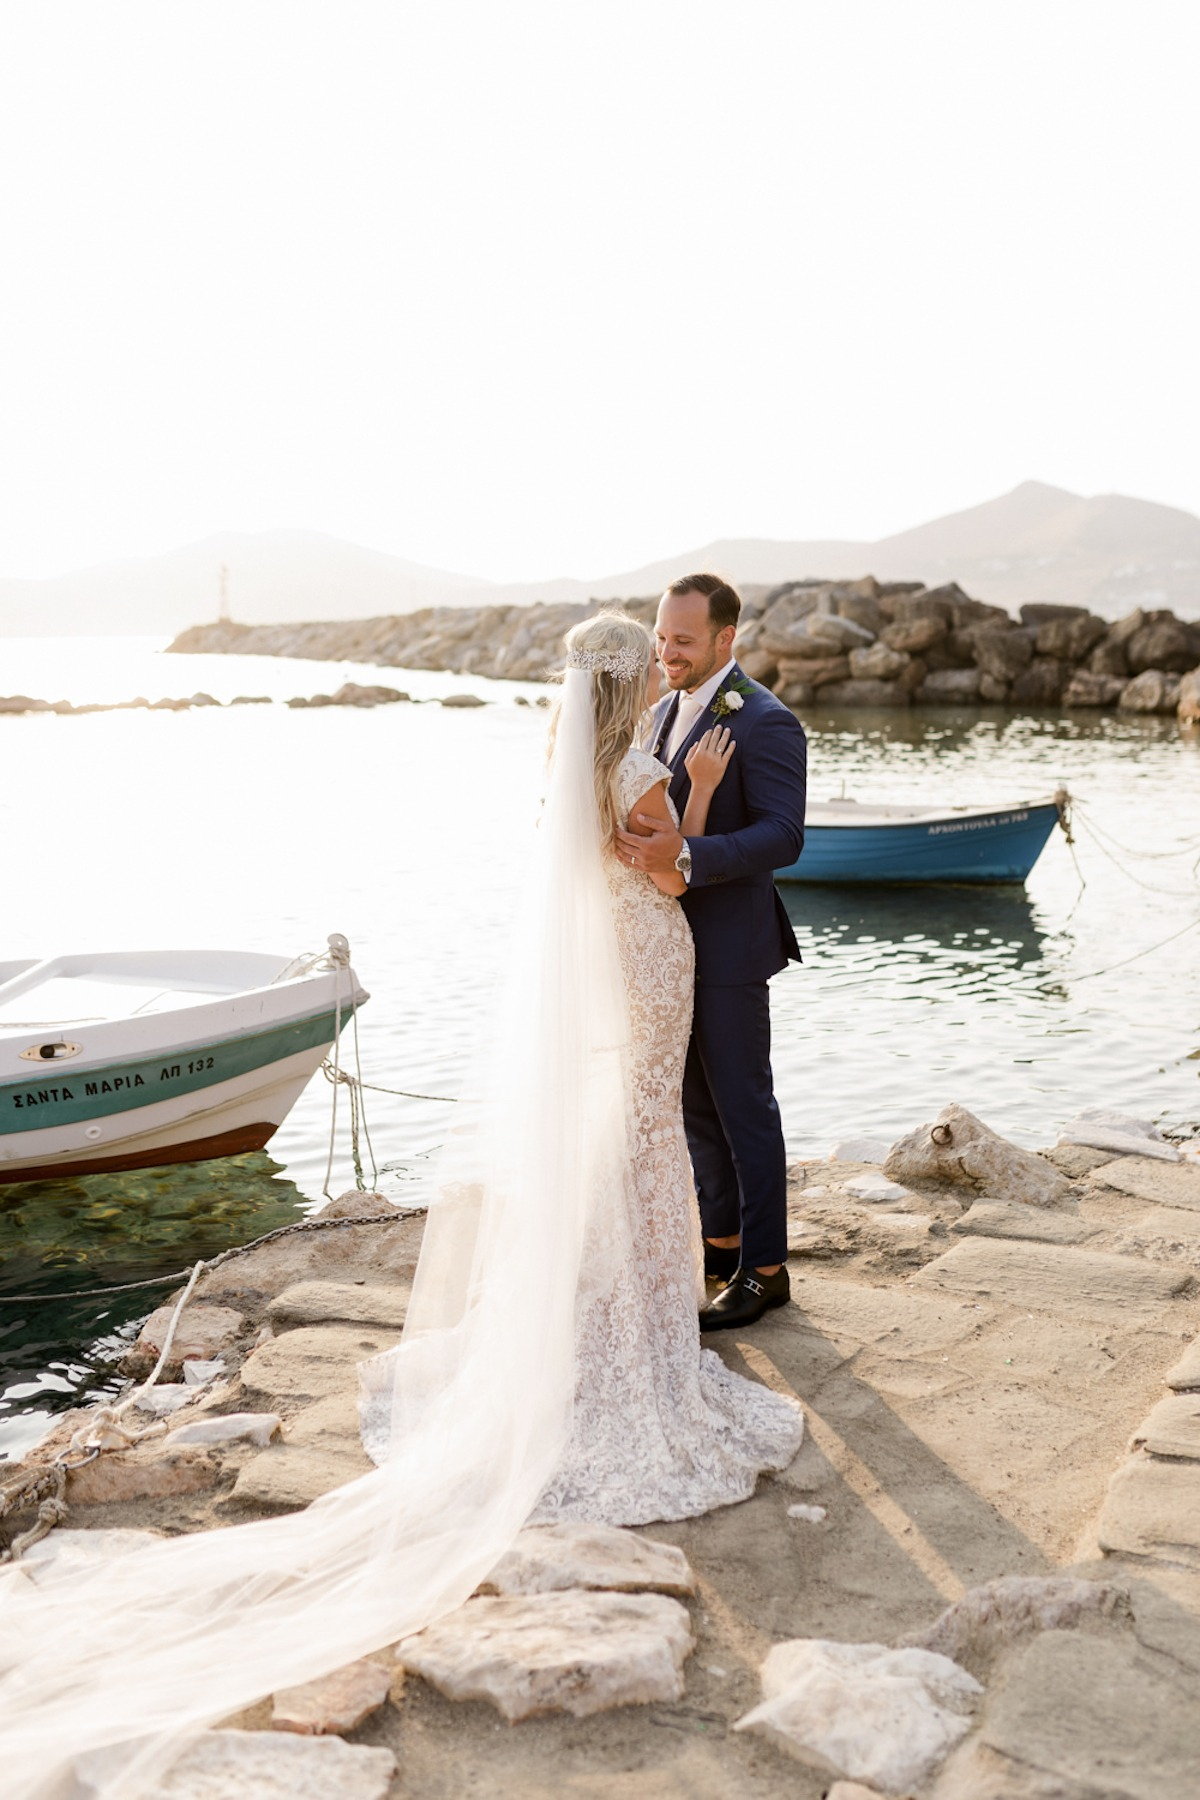 Destination wedding in Naoussa, Greece